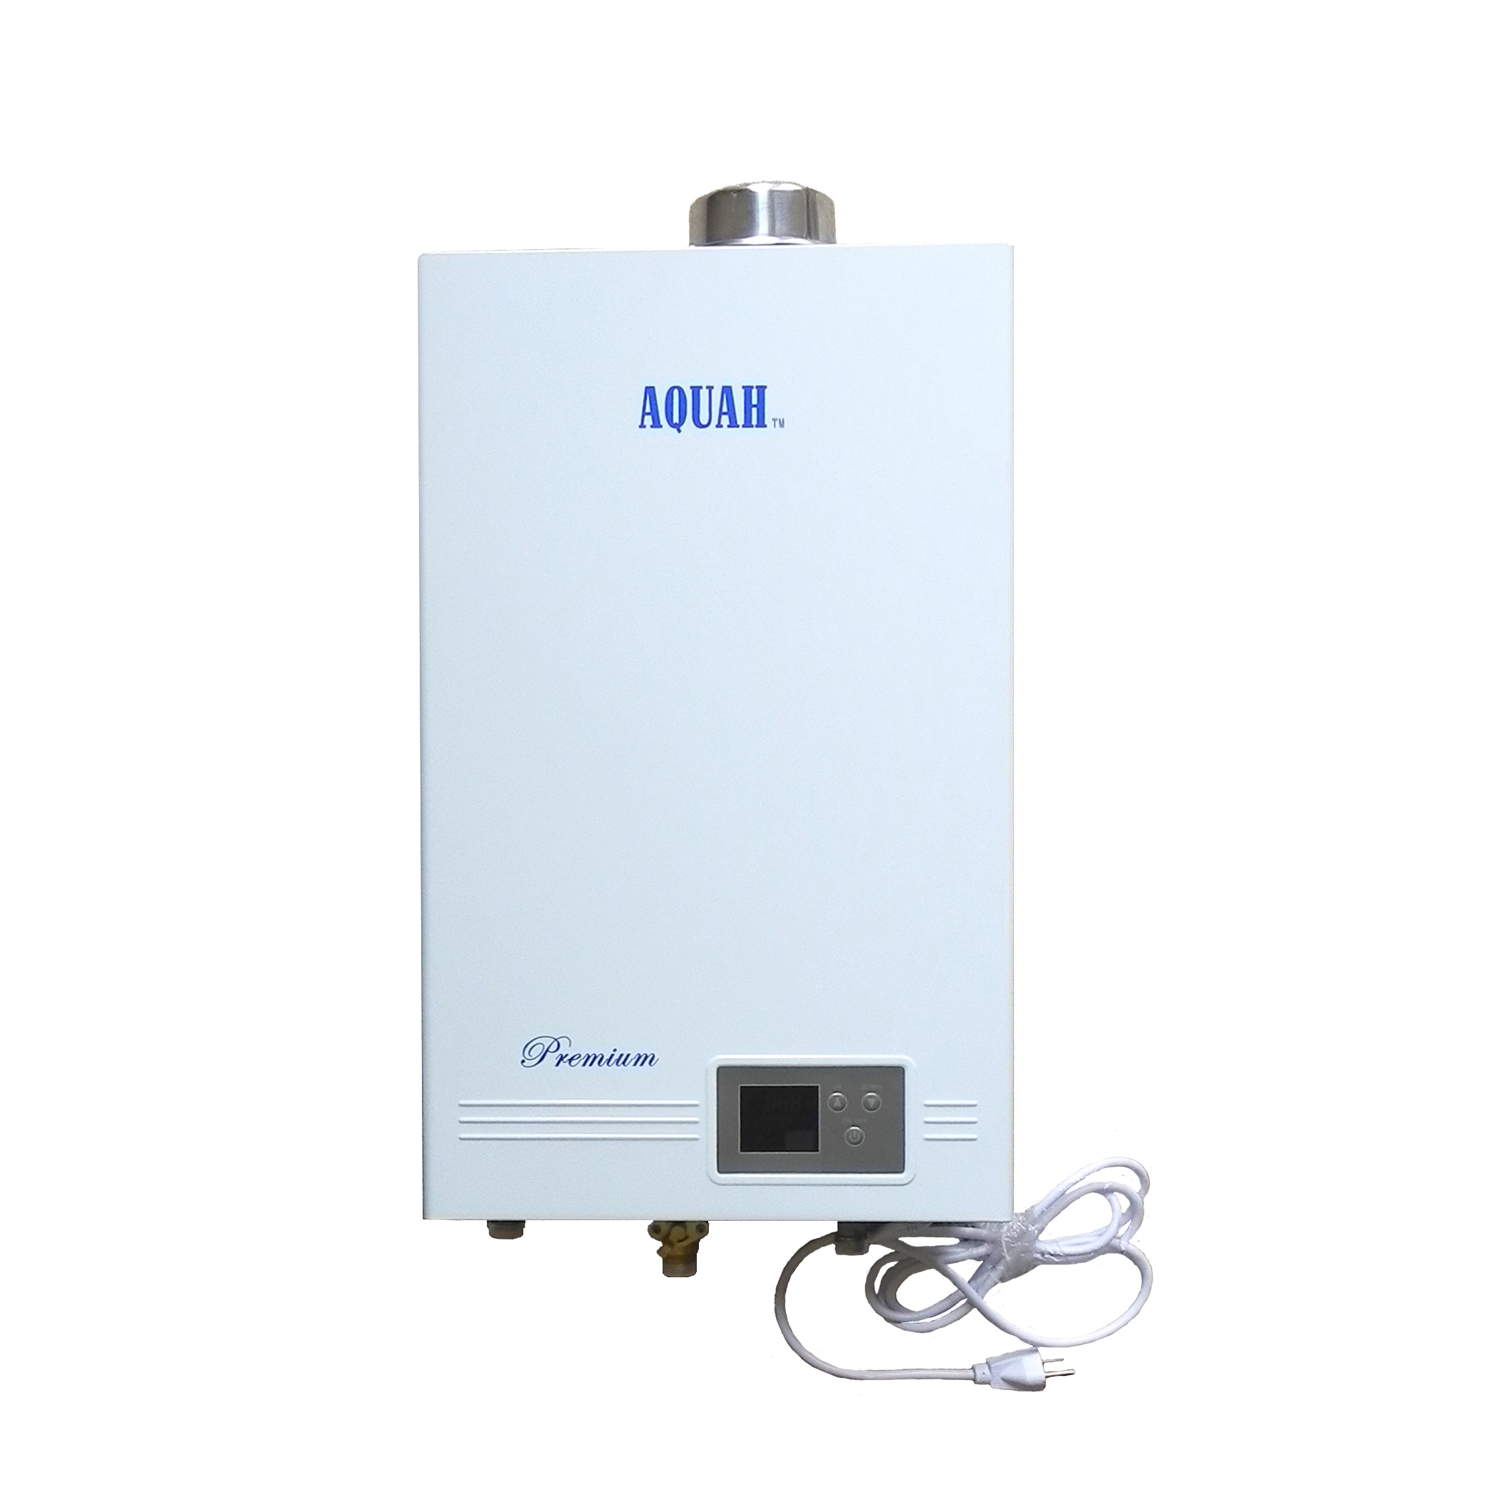 aquah premium direct vent propane gas tankless water heater